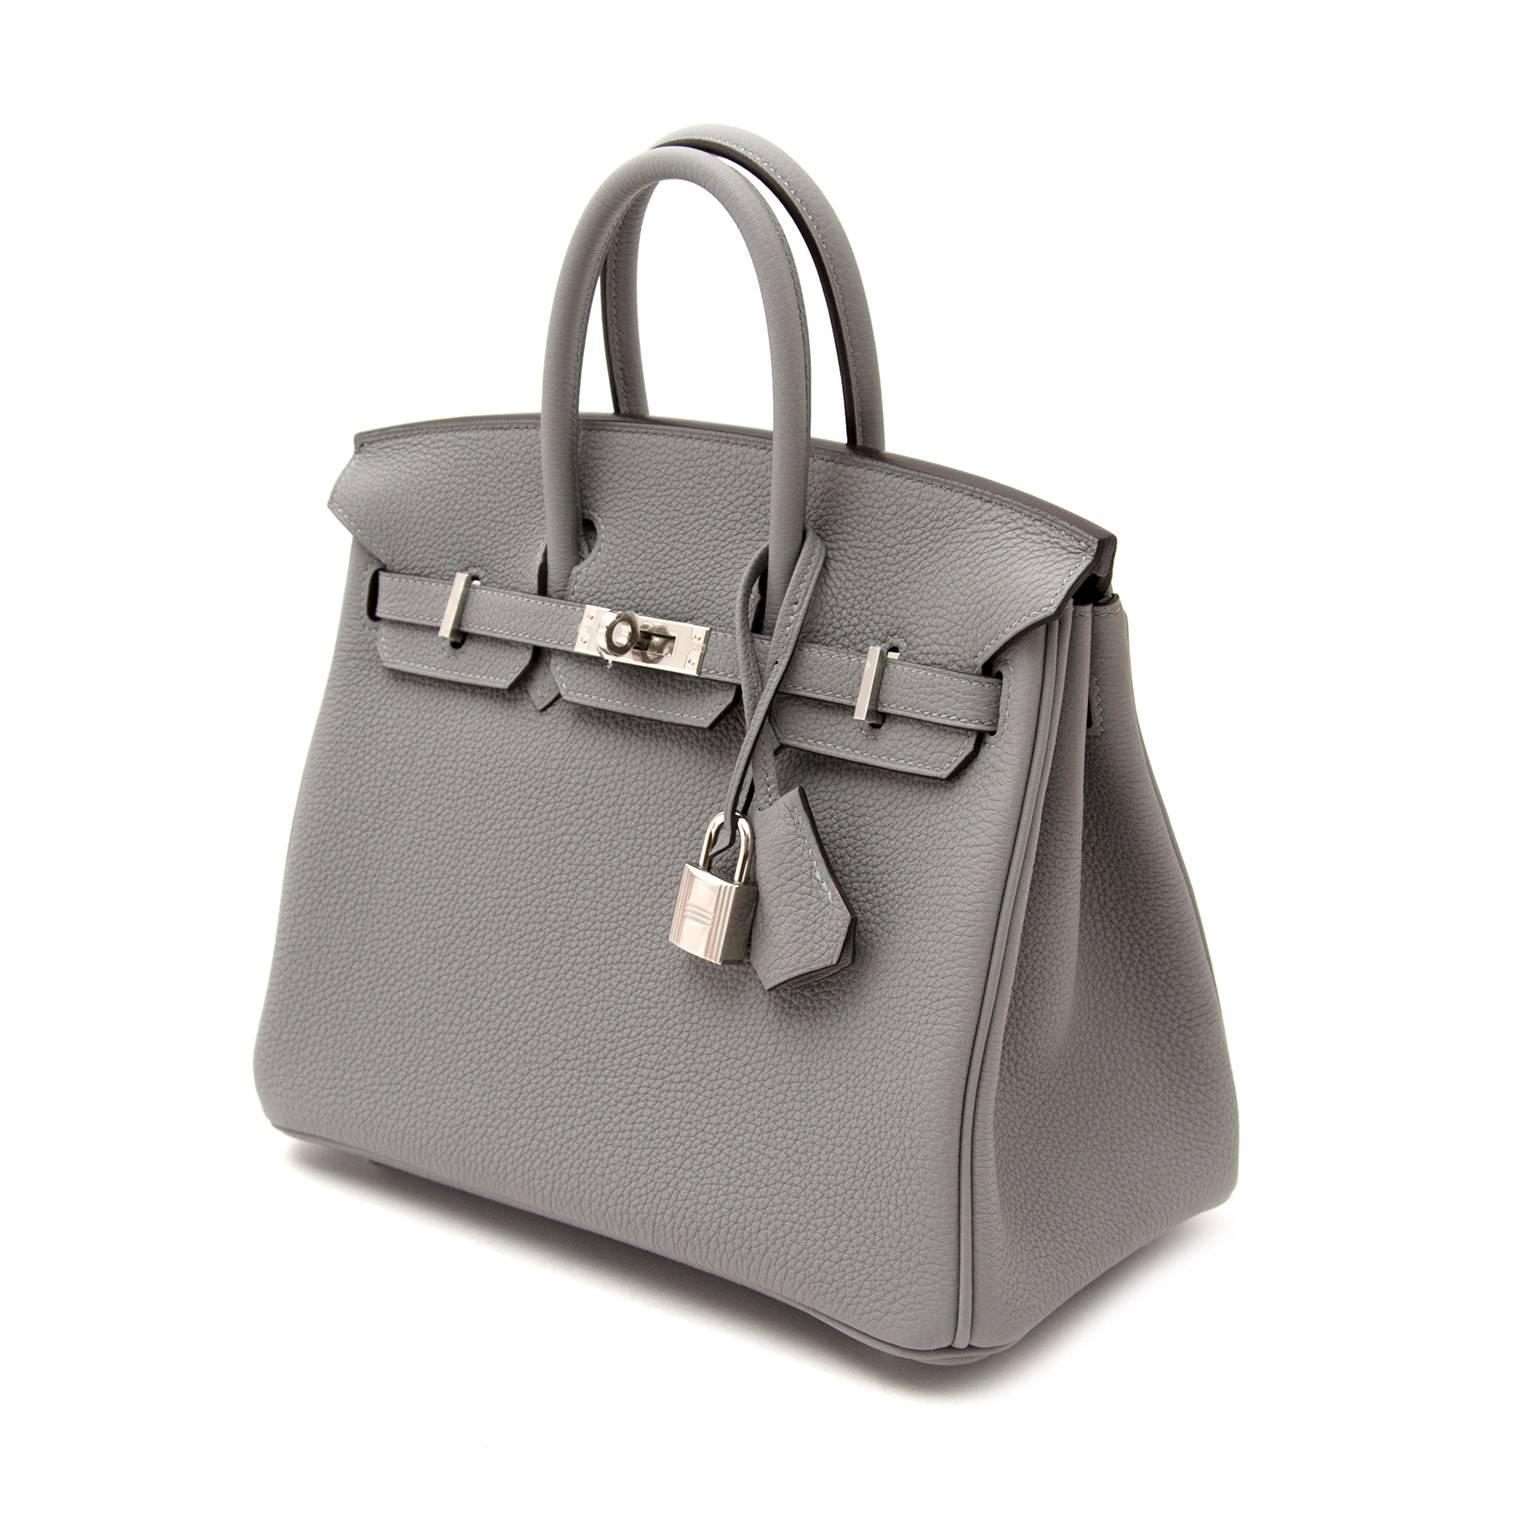 Brand New Birkin 25 Gris Mouette Togo PHW at 1stdibs d22890faba988